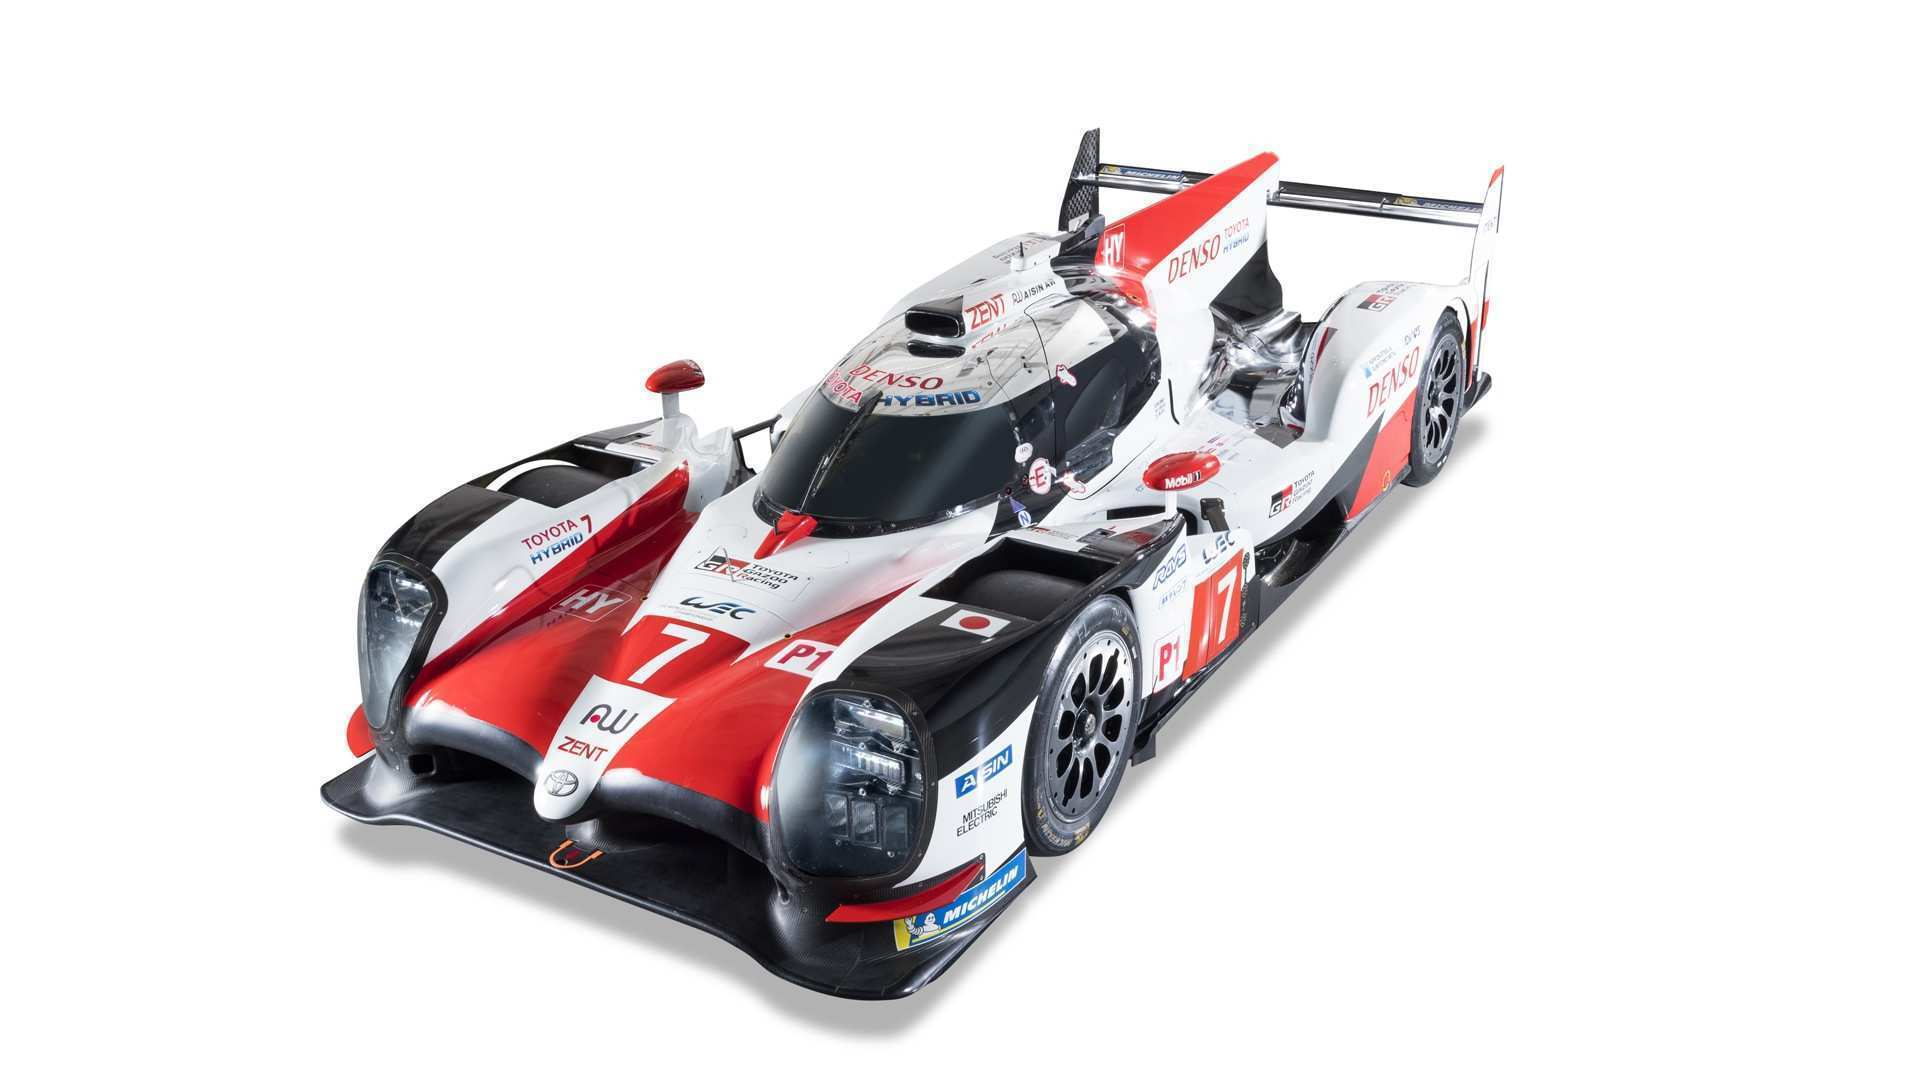 80 Concept of Peugeot Lmp1 2019 Reviews by Peugeot Lmp1 2019